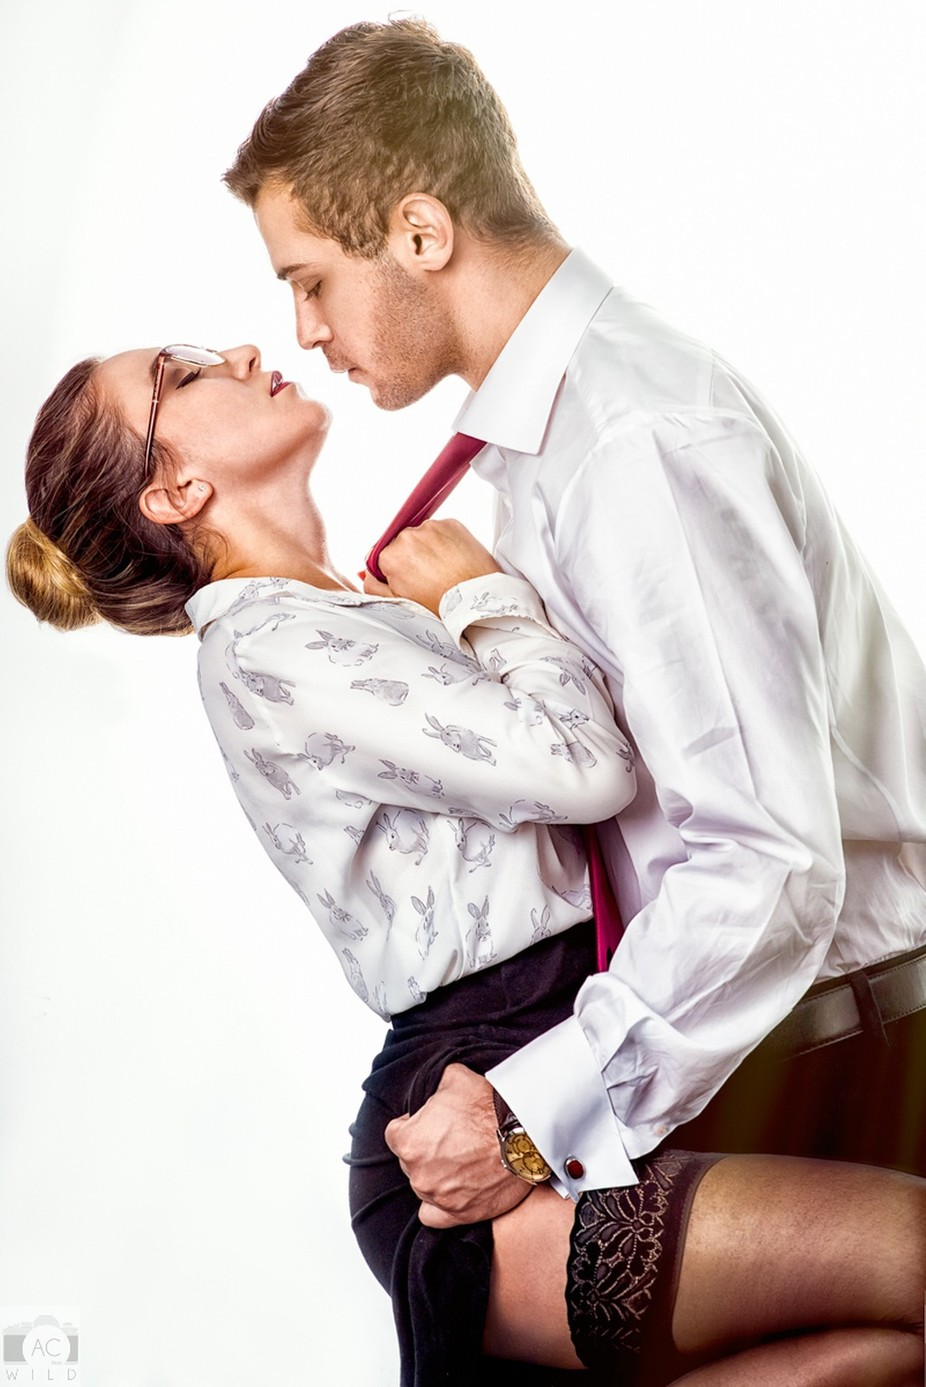 Office affair by AndChisPhoto - Romantic Photo Contest